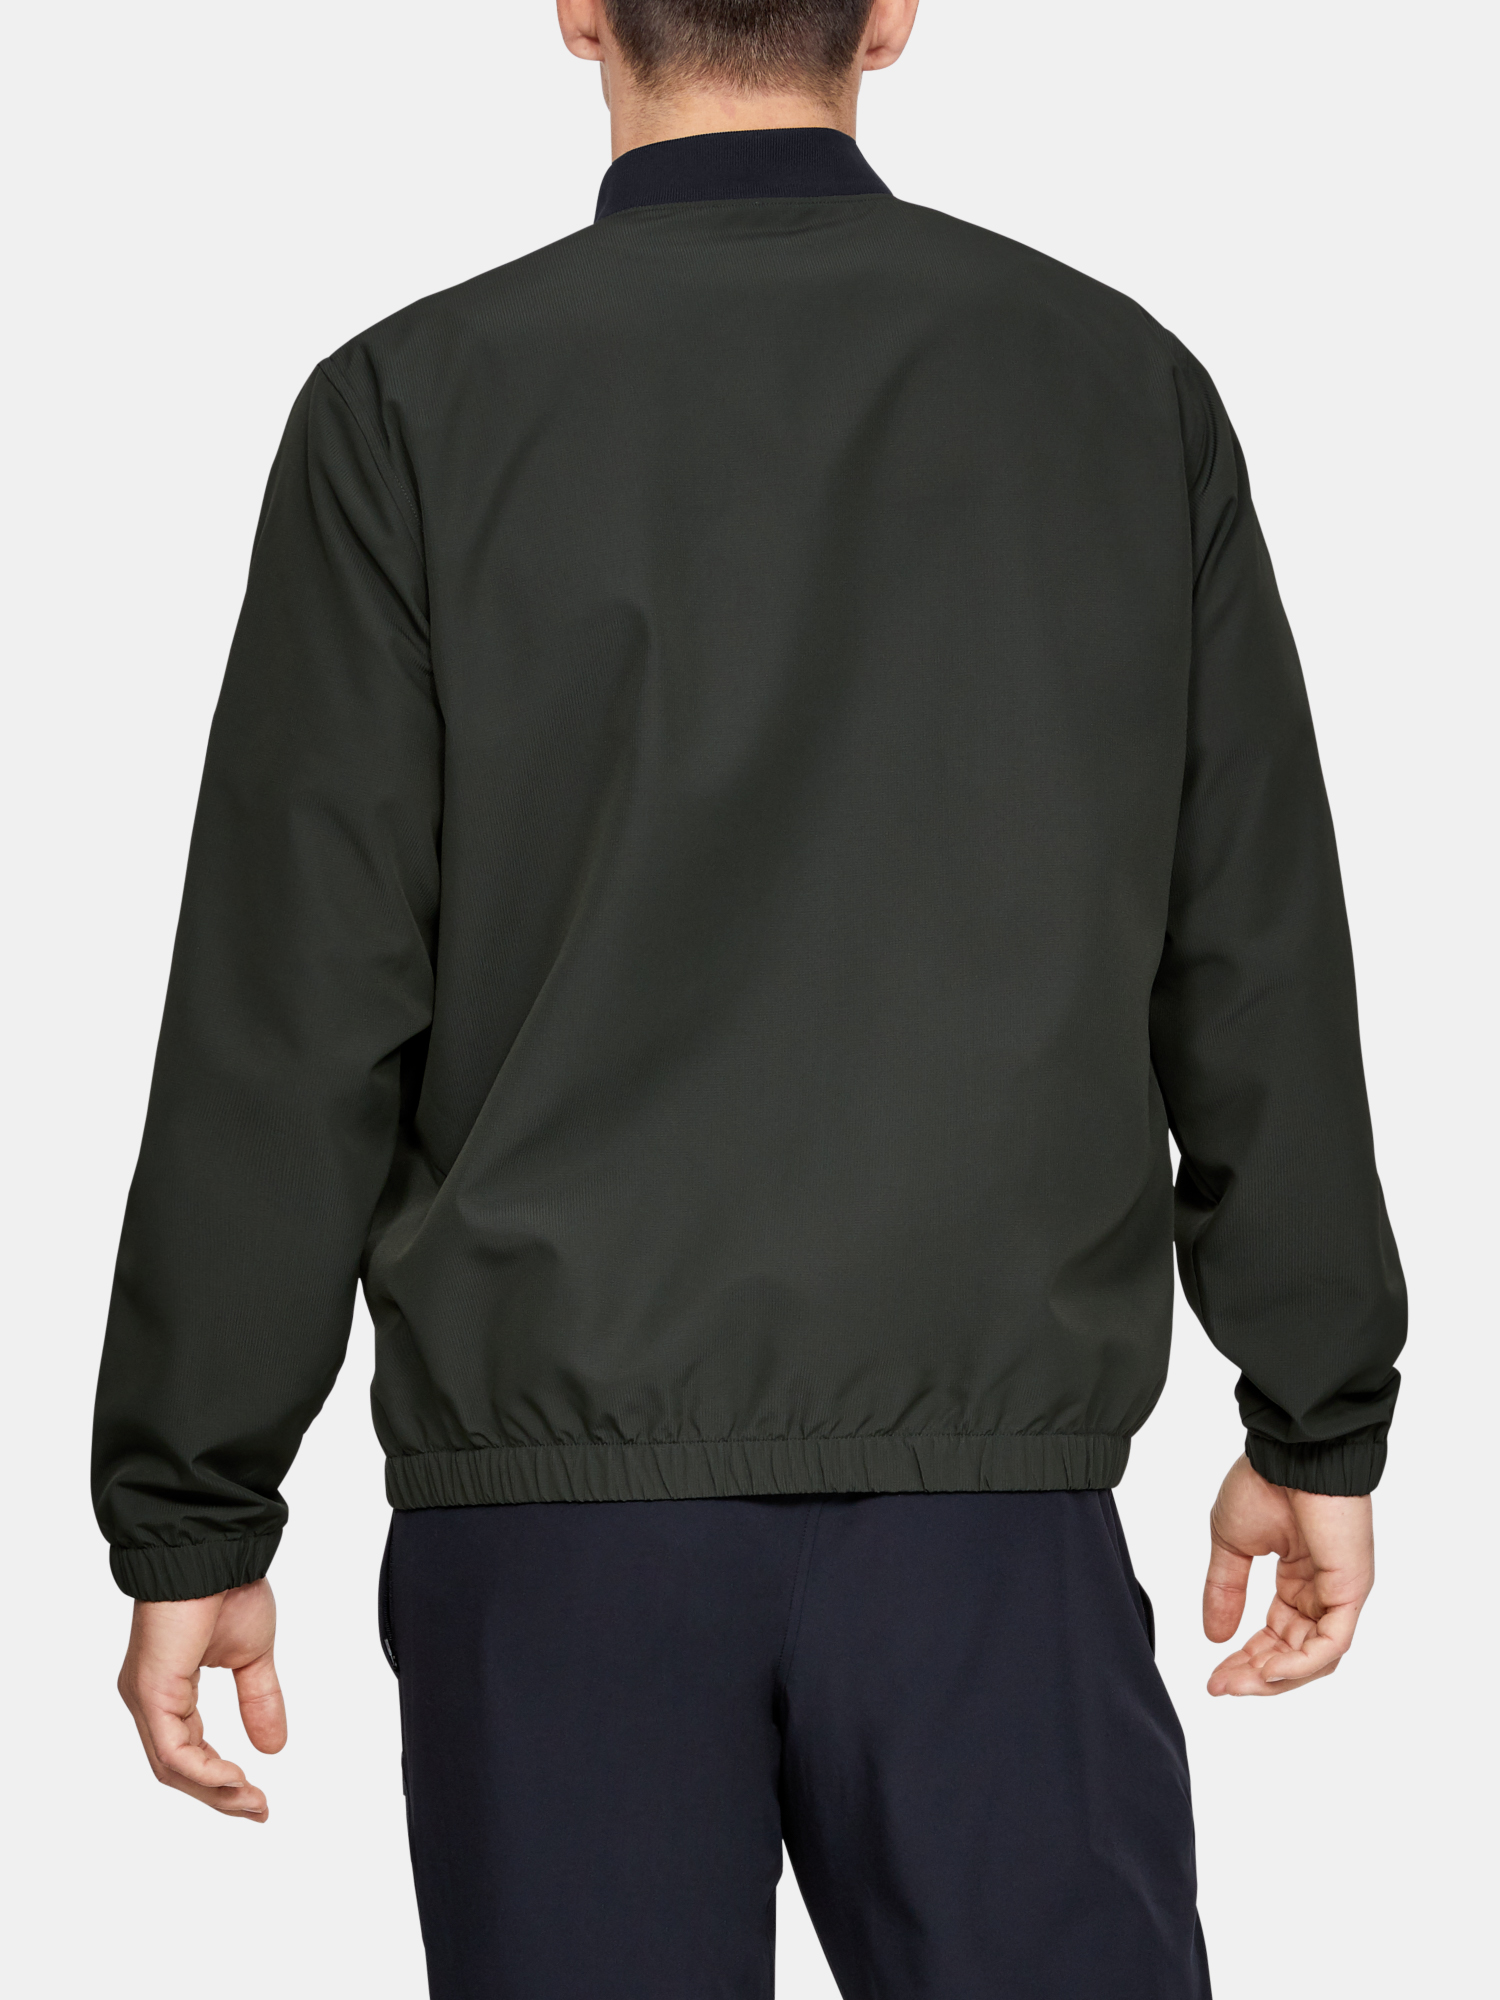 Bunda Under Armour Unstoppable Essential Bomber-Grn (2)